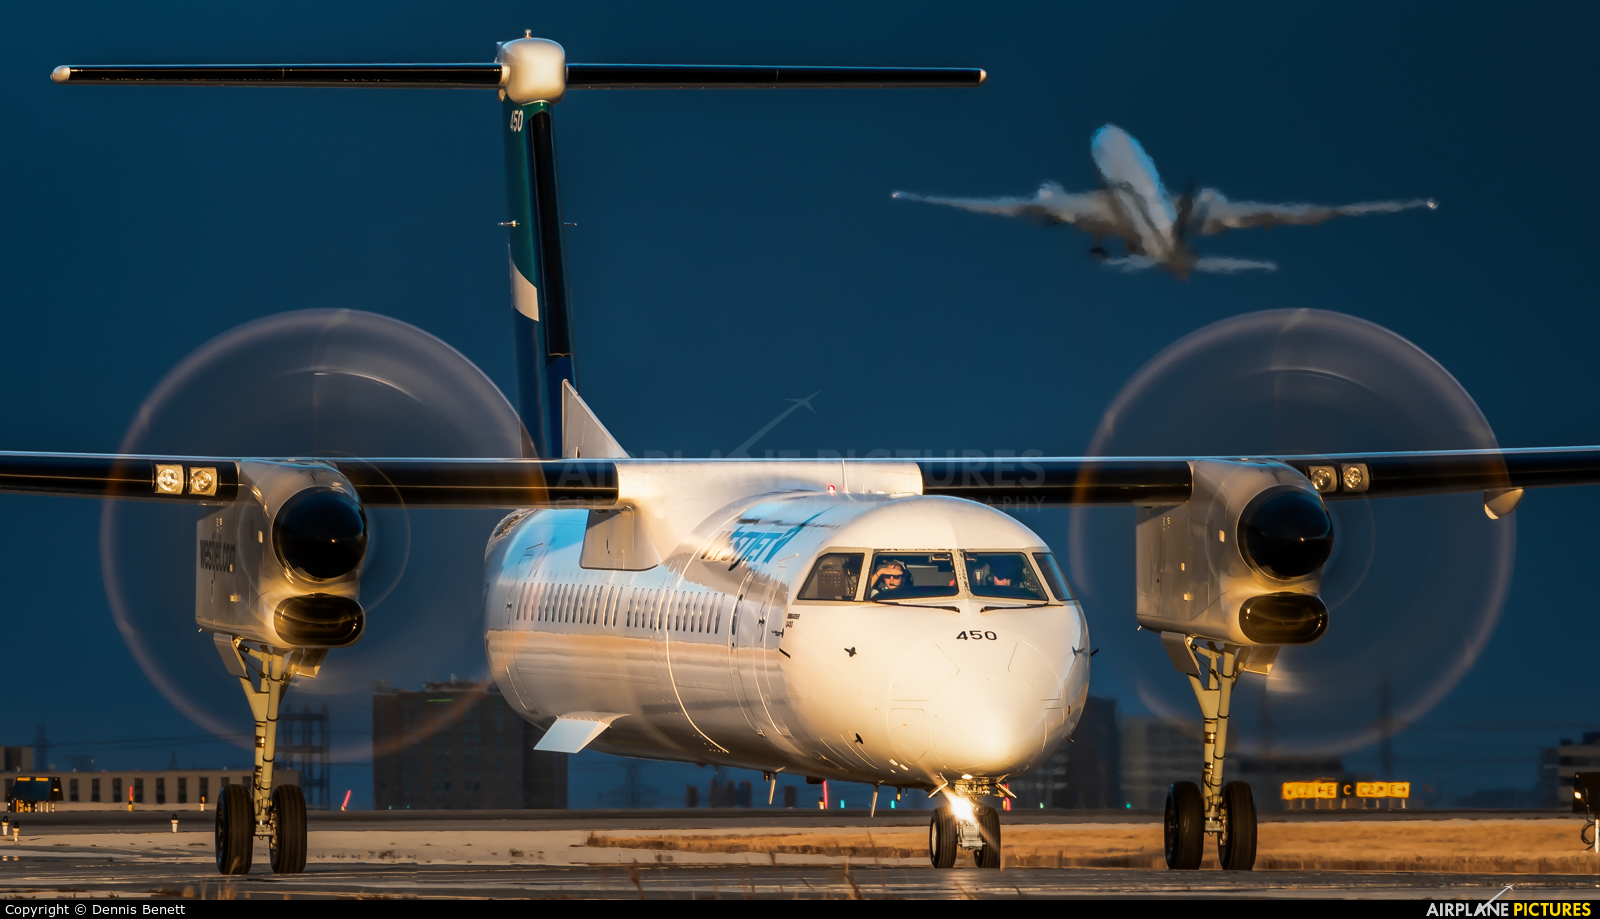 WestJet Encore C-FOWE aircraft at Toronto - Pearson Intl, ON